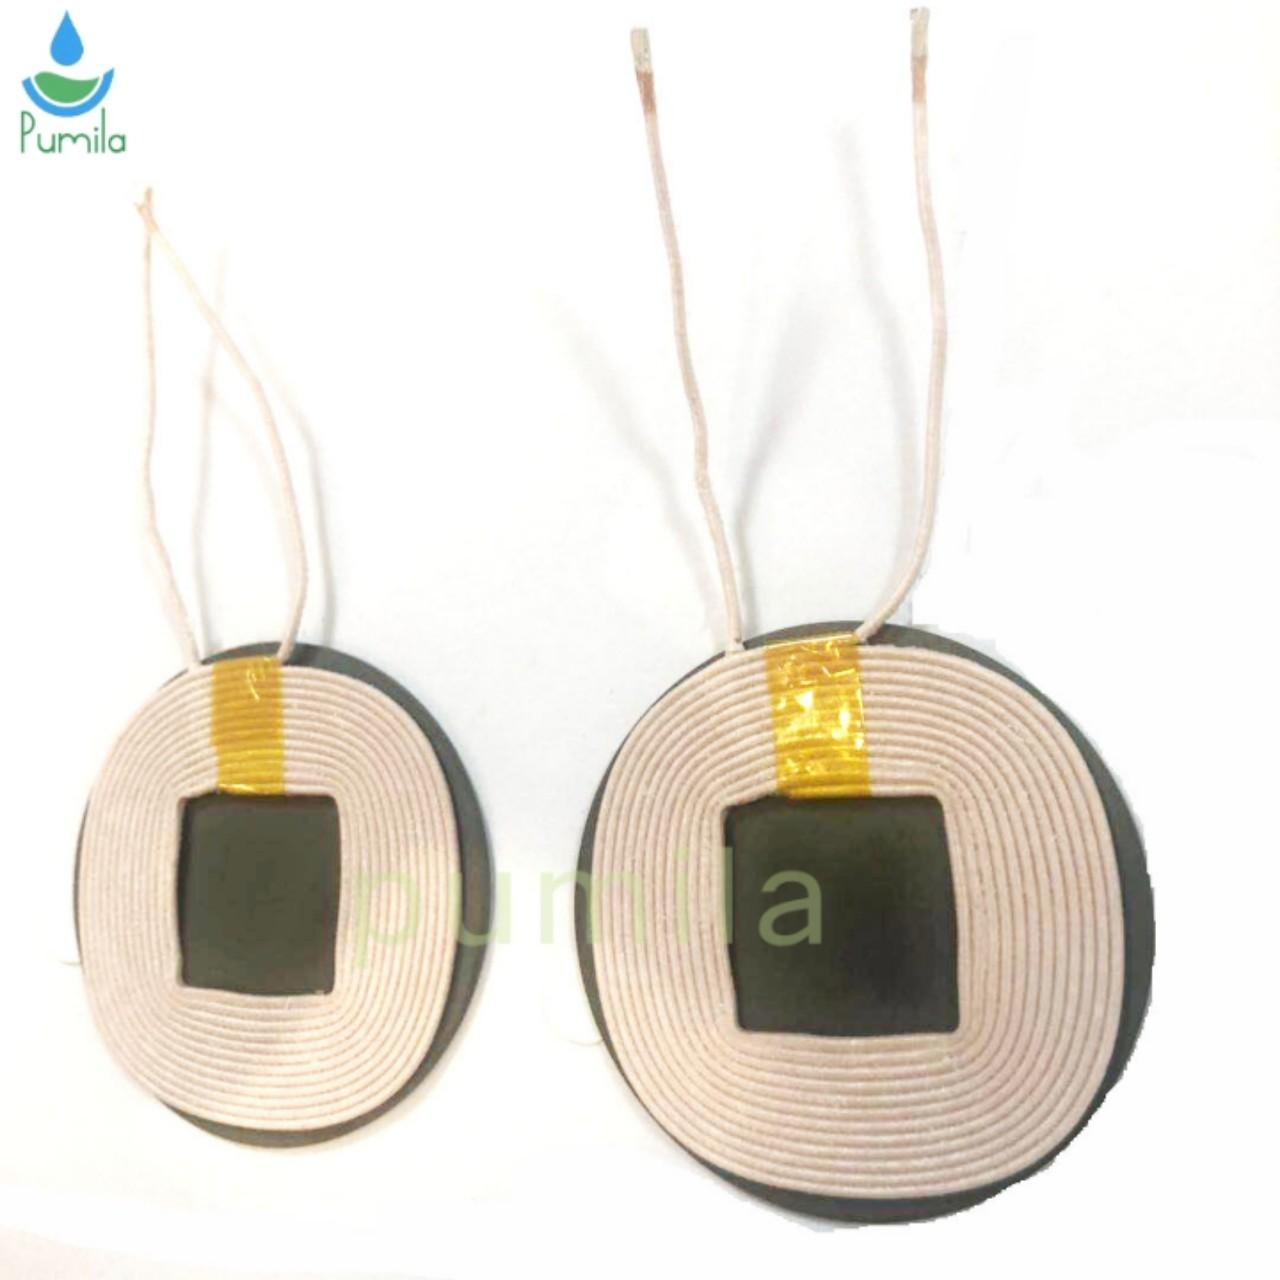 Qi Inductive Coil A12 Ferrite Sheet Wireless Charging TX Coil for sale